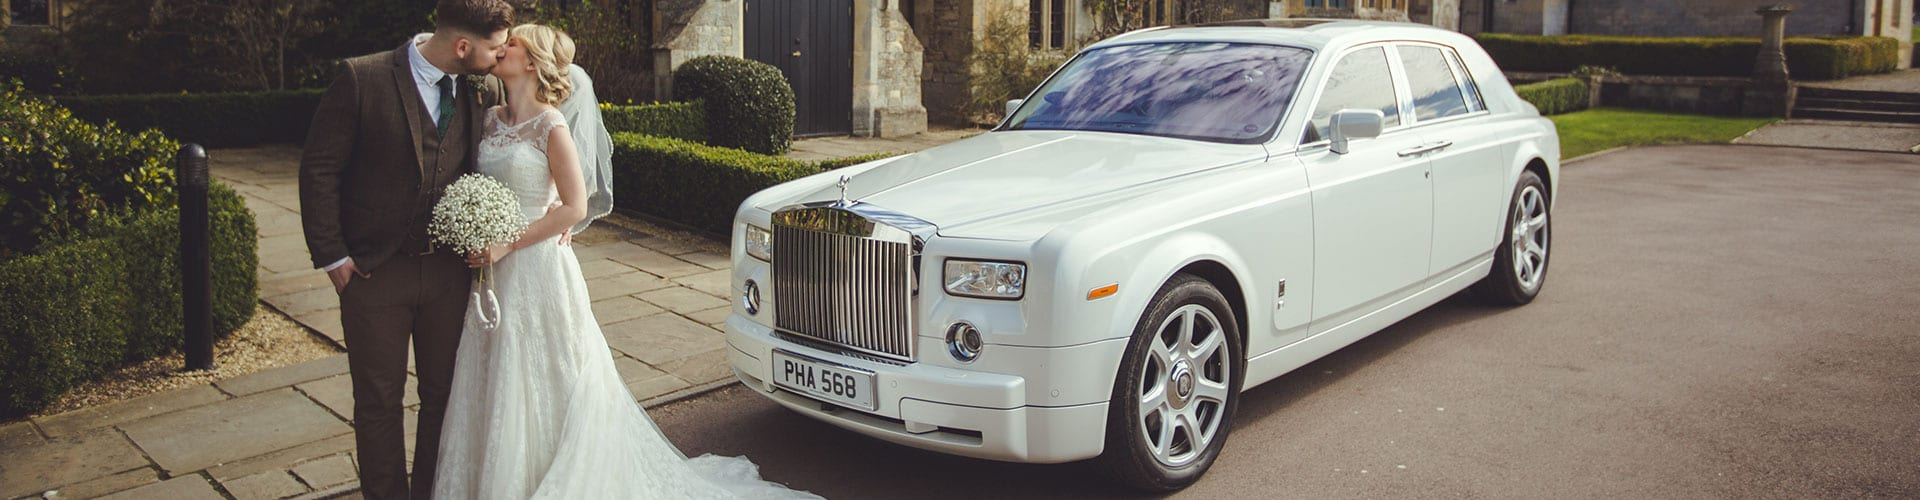 Rolls-Royce-Phantom-Hero-Slider-7